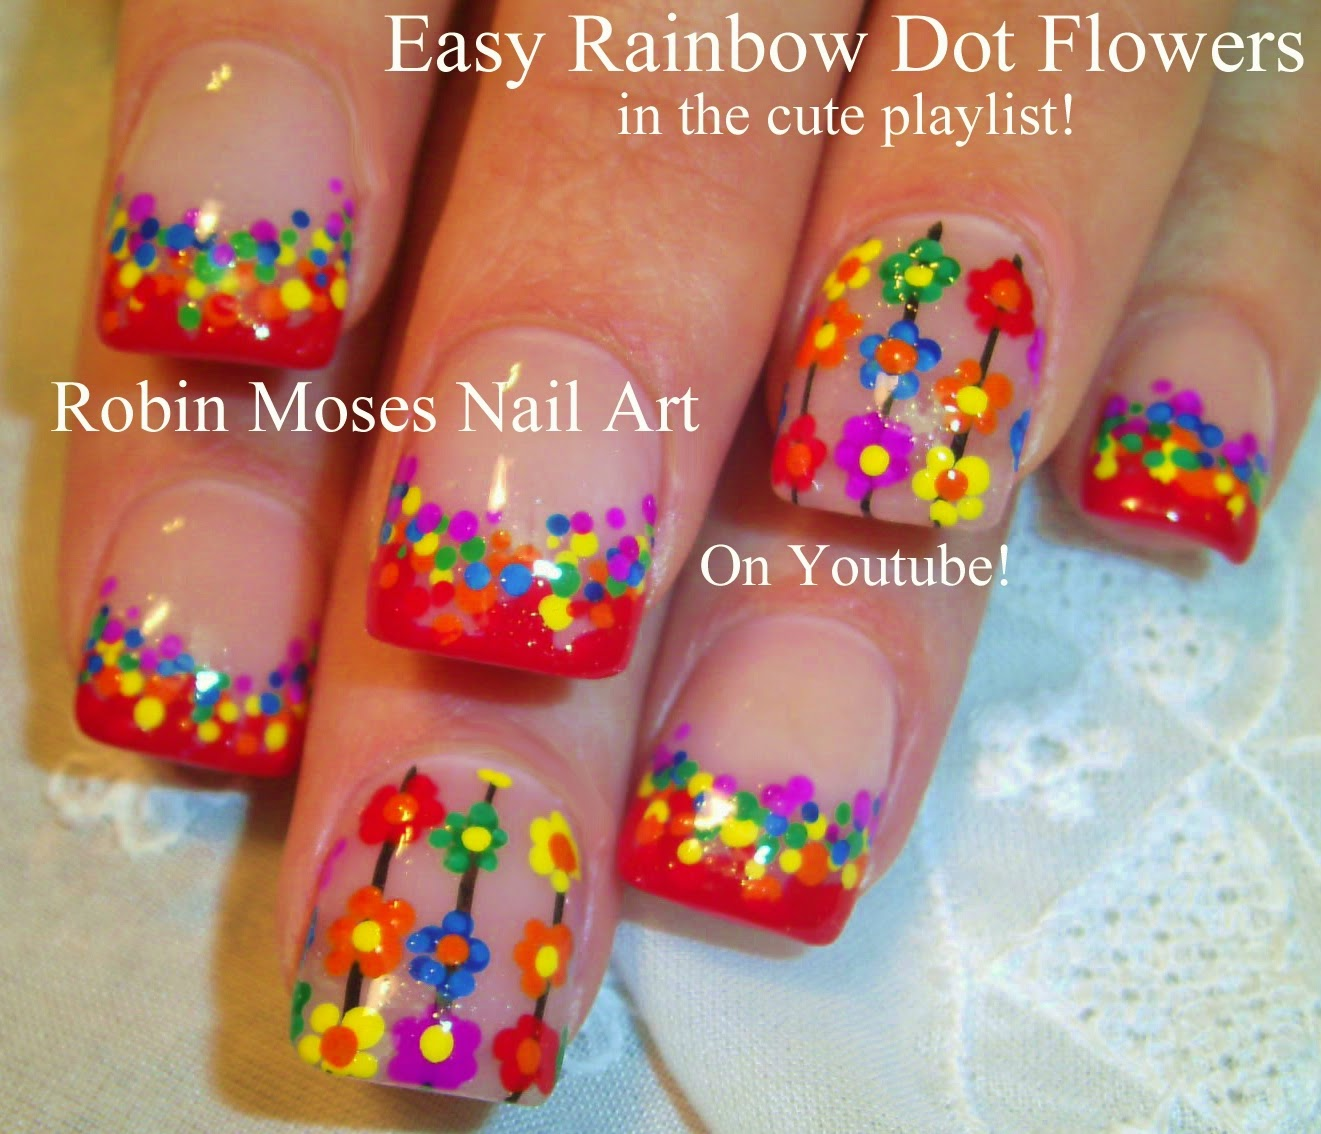 Robin Moses Nail Art February 2015: Robin Moses Nail Art: February 2015